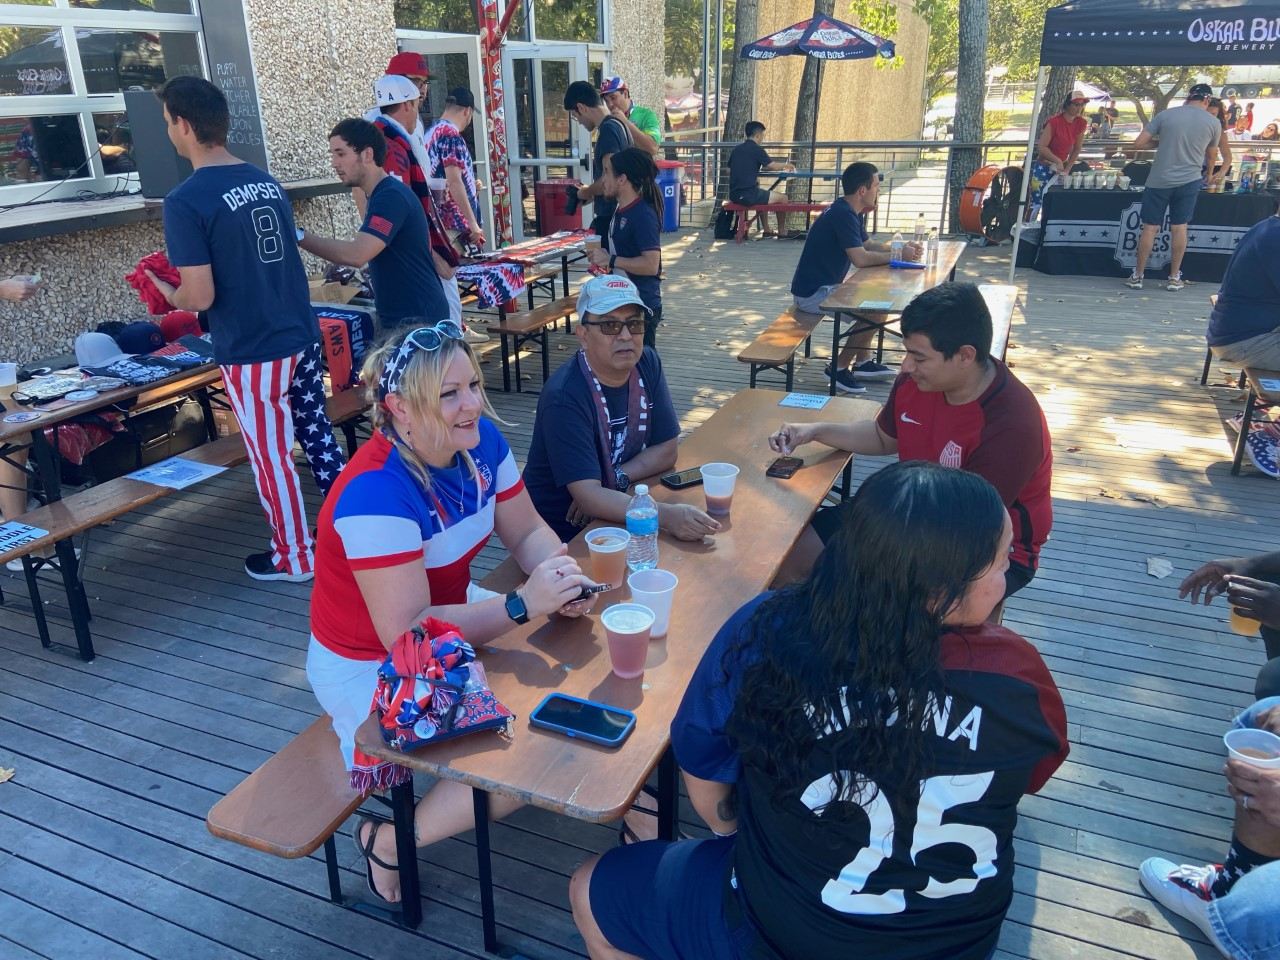 Fans gather before the U.S. versus Jamaica game